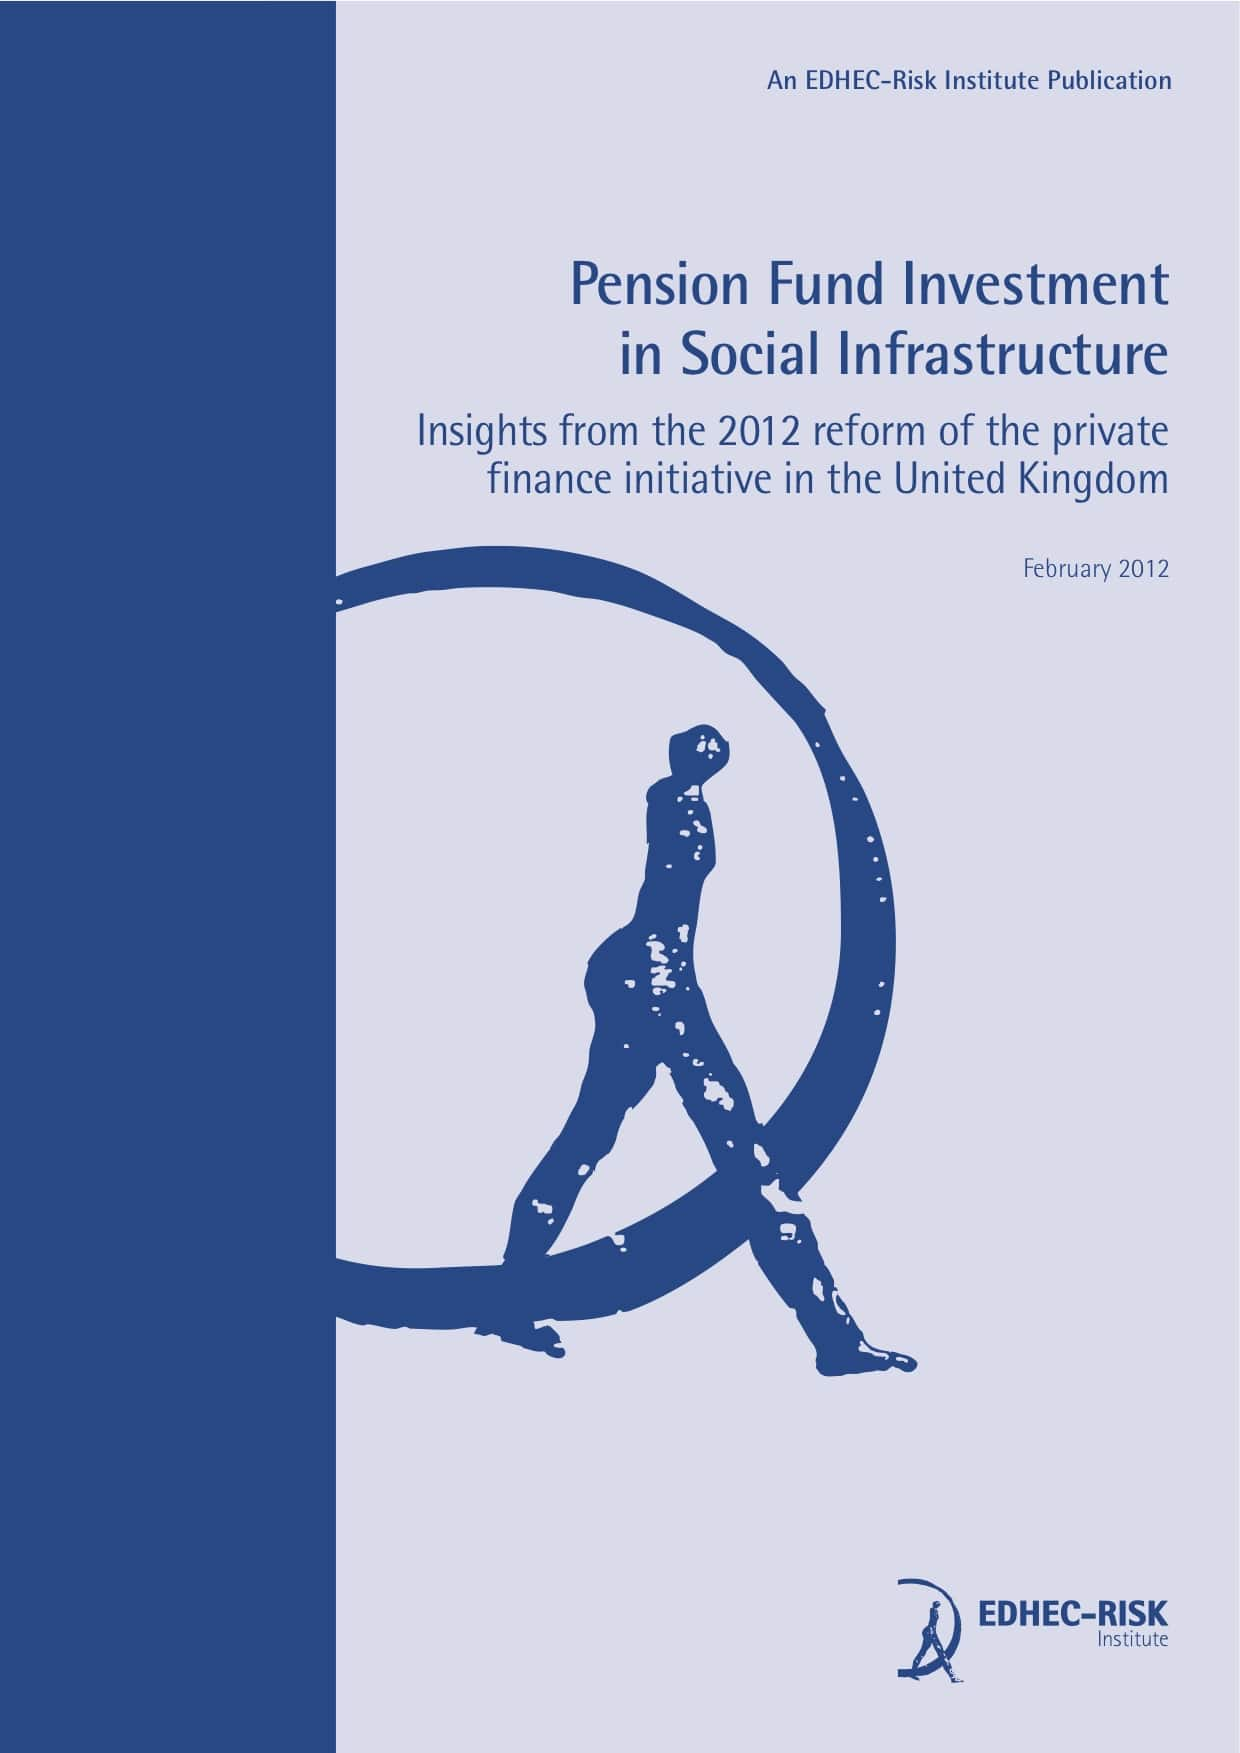 Pension fund investment in social infrastructure: insights from the 2012 reform of the Private Finance Initiative